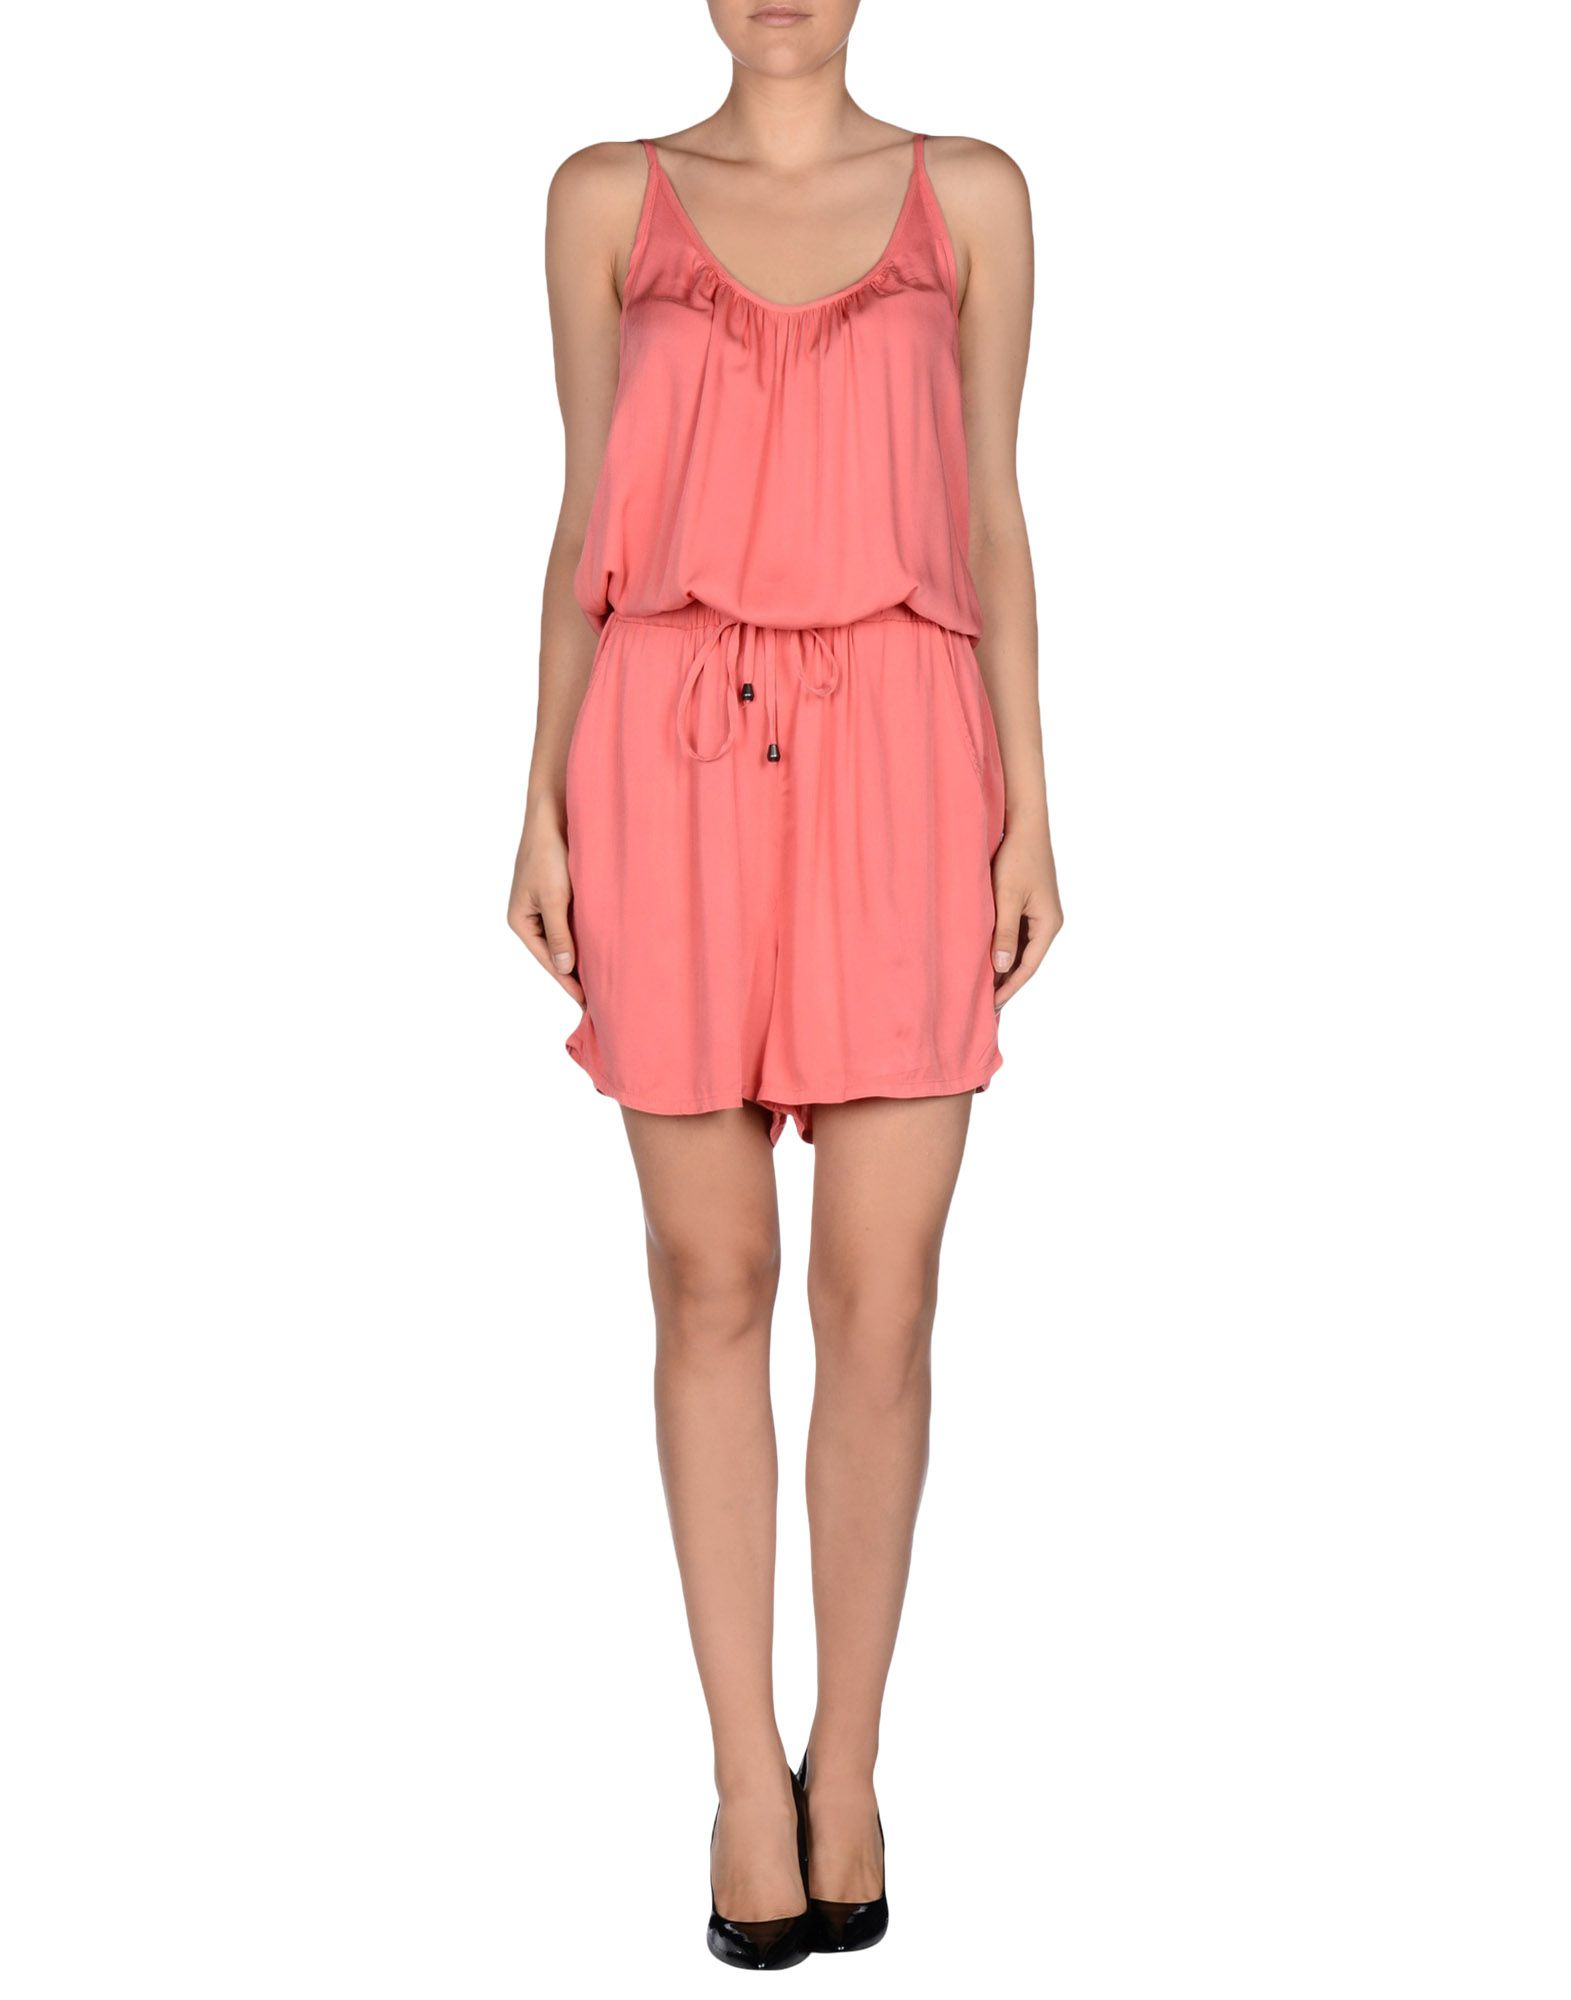 vero moda jumpsuit in pink coral save 20 lyst. Black Bedroom Furniture Sets. Home Design Ideas